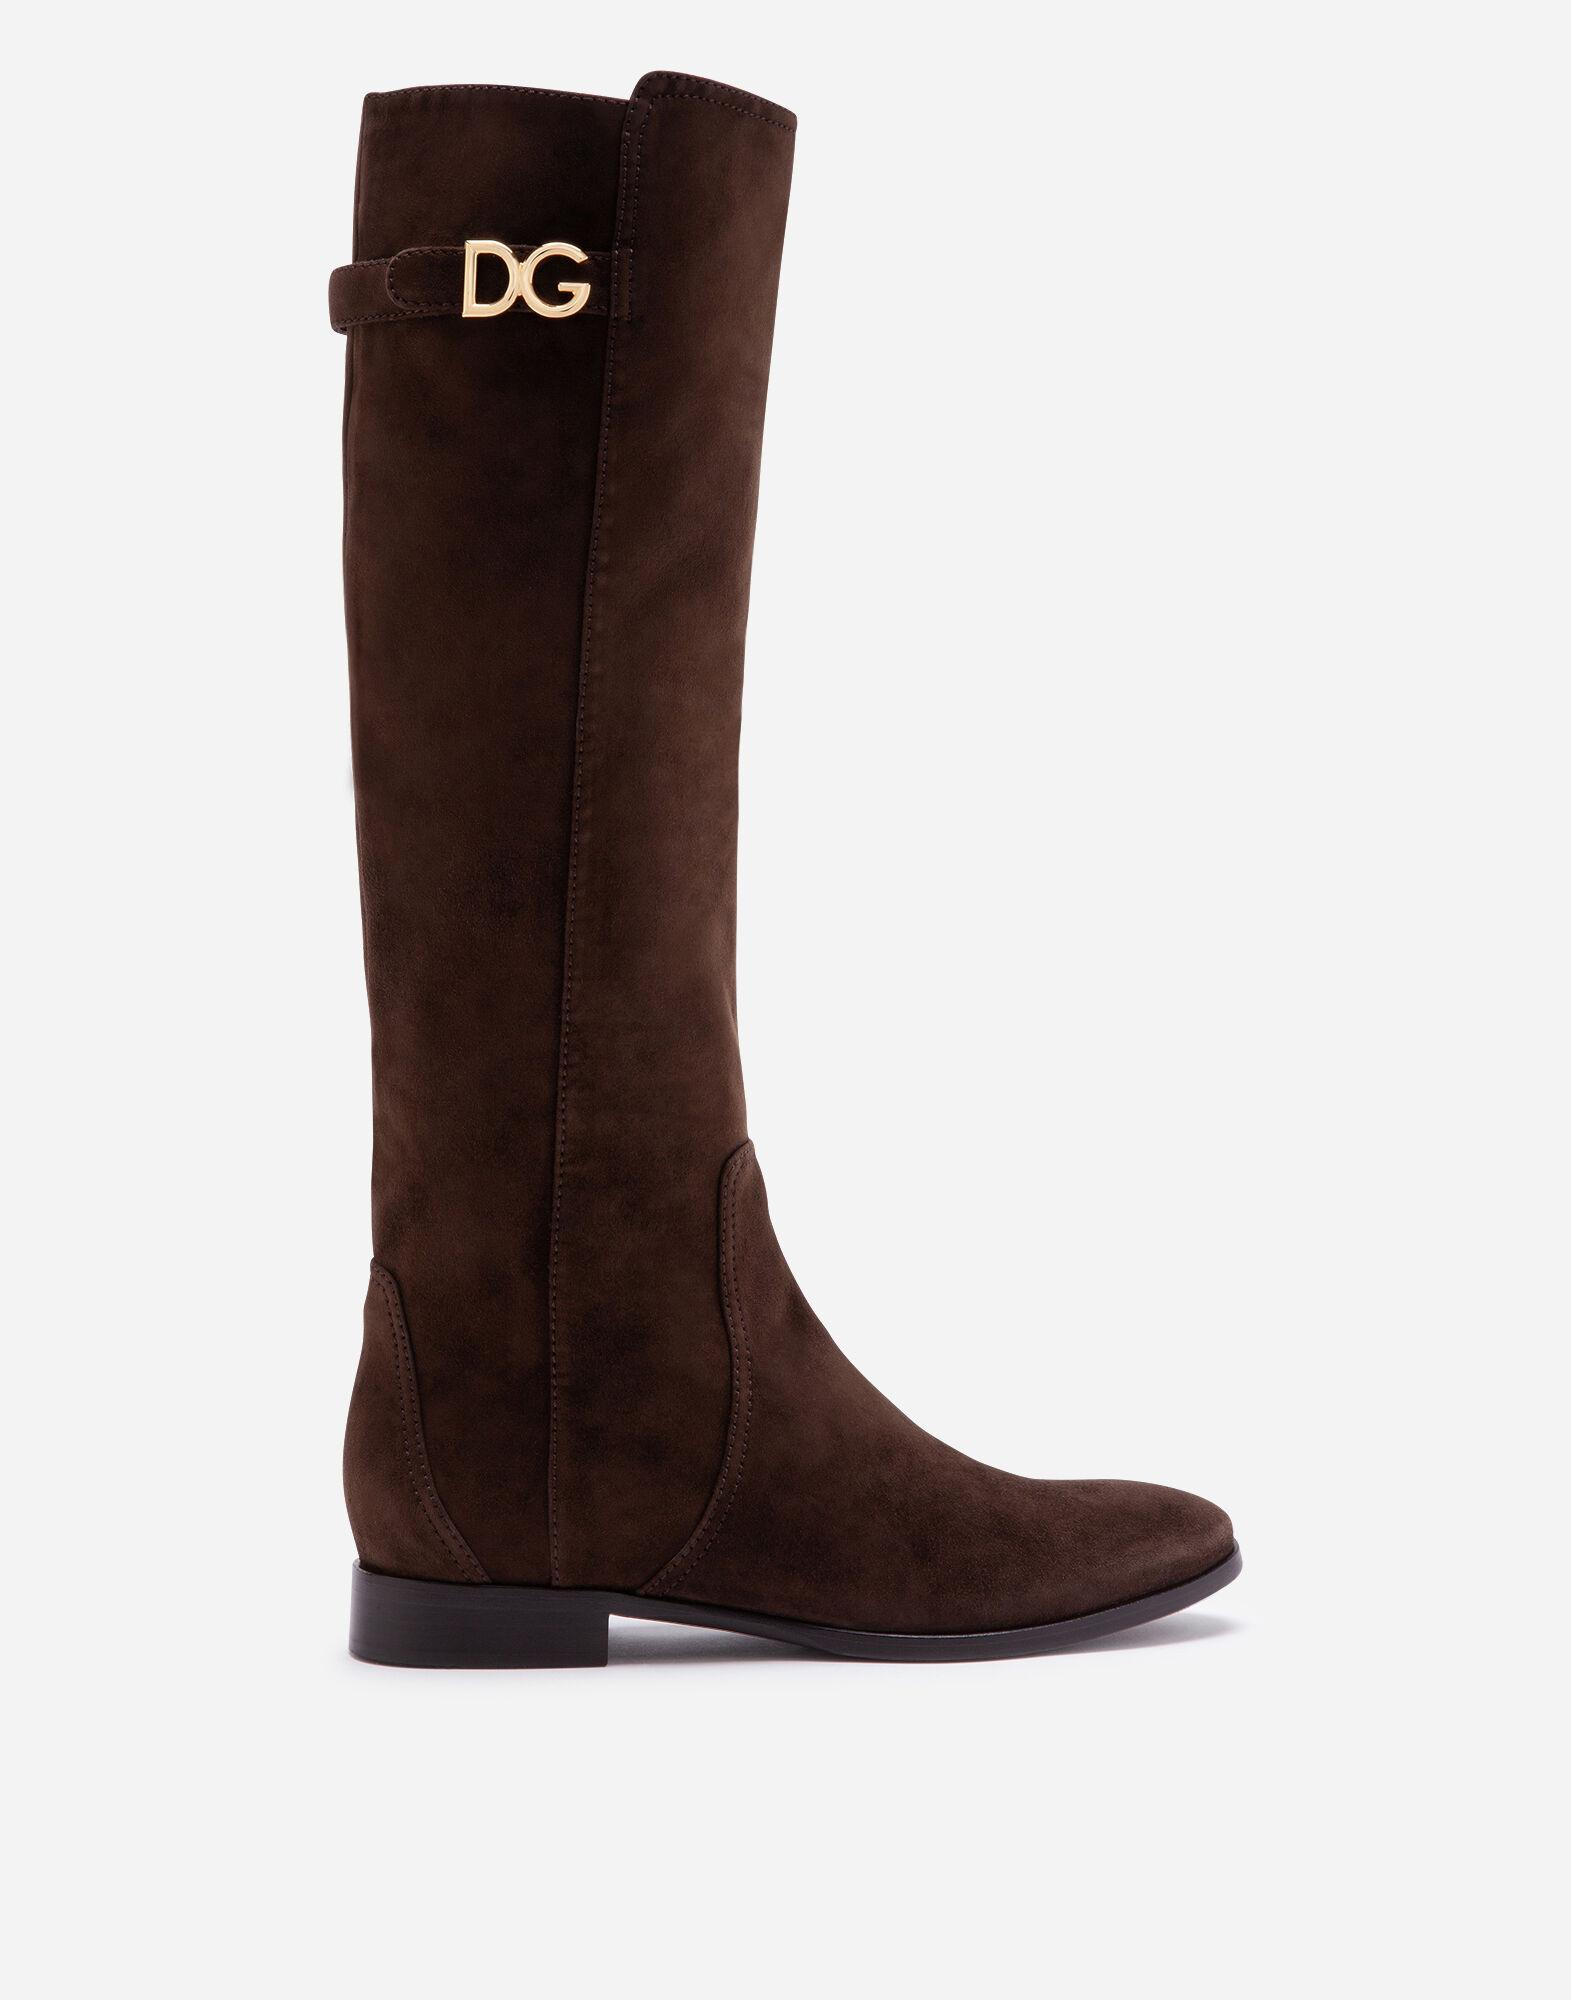 Suede boots with DG logo